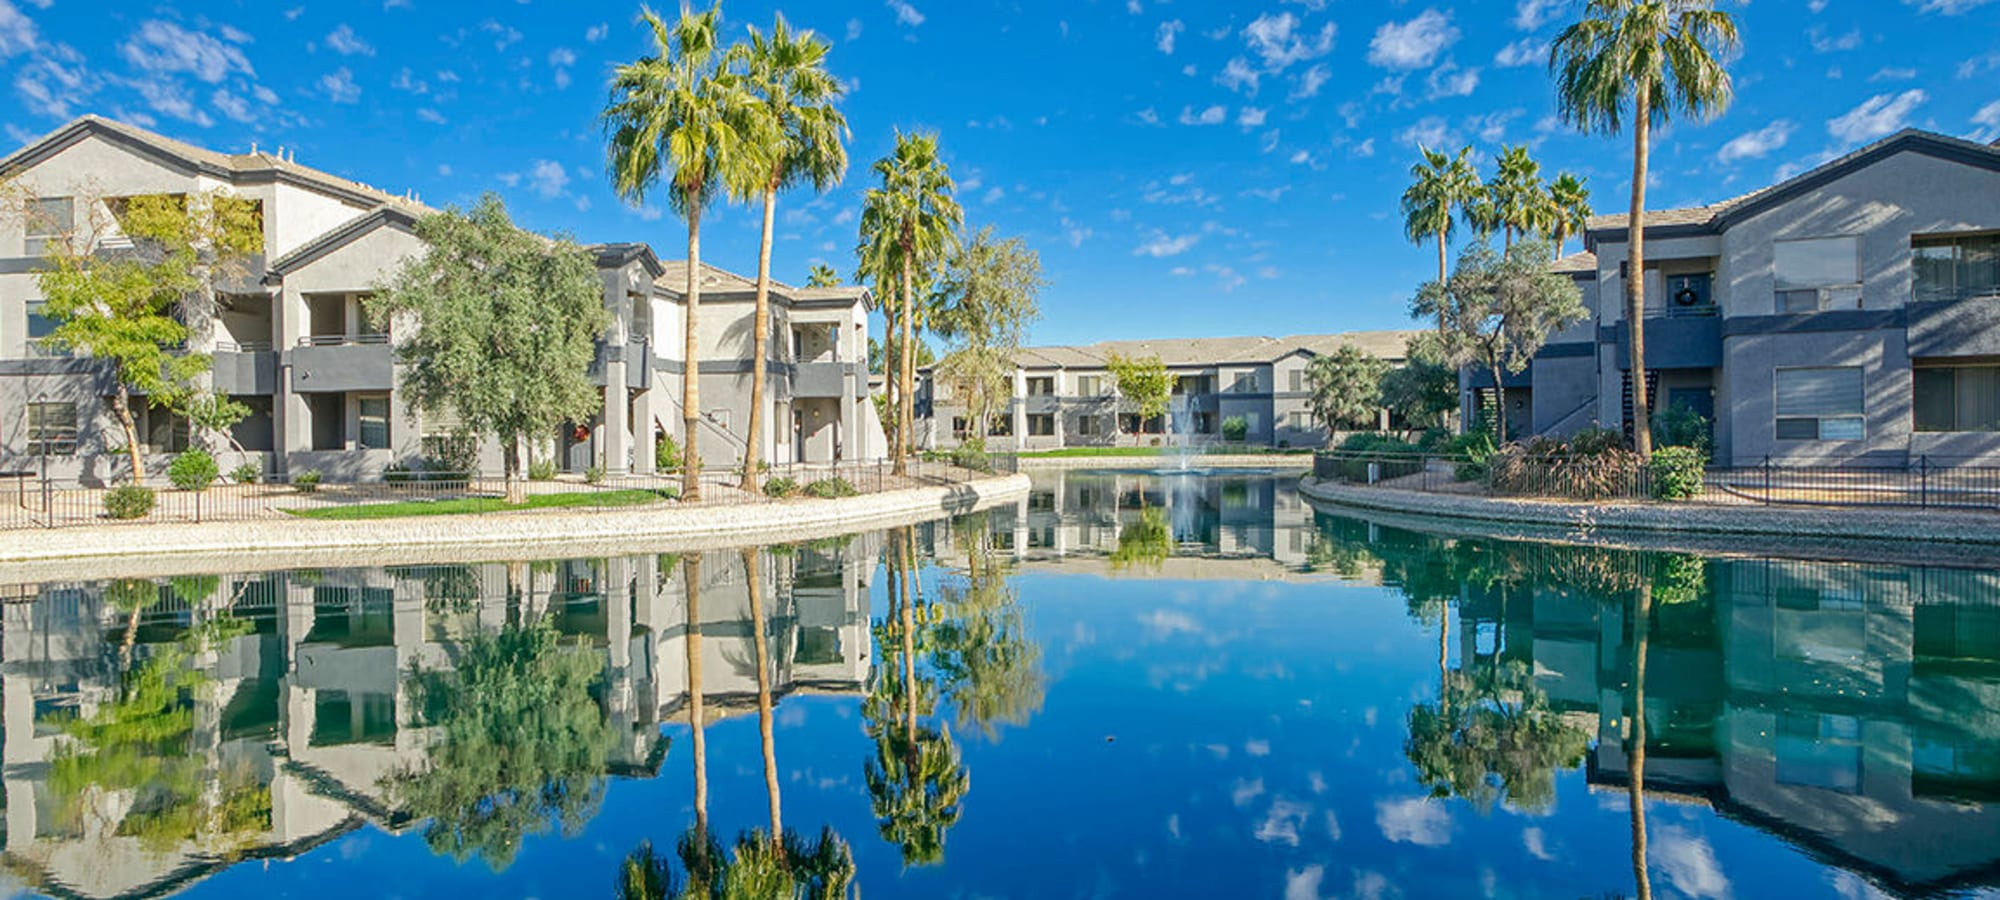 Resident homes with palm trees at Laguna at Arrowhead Ranch in Glendale, Arizona